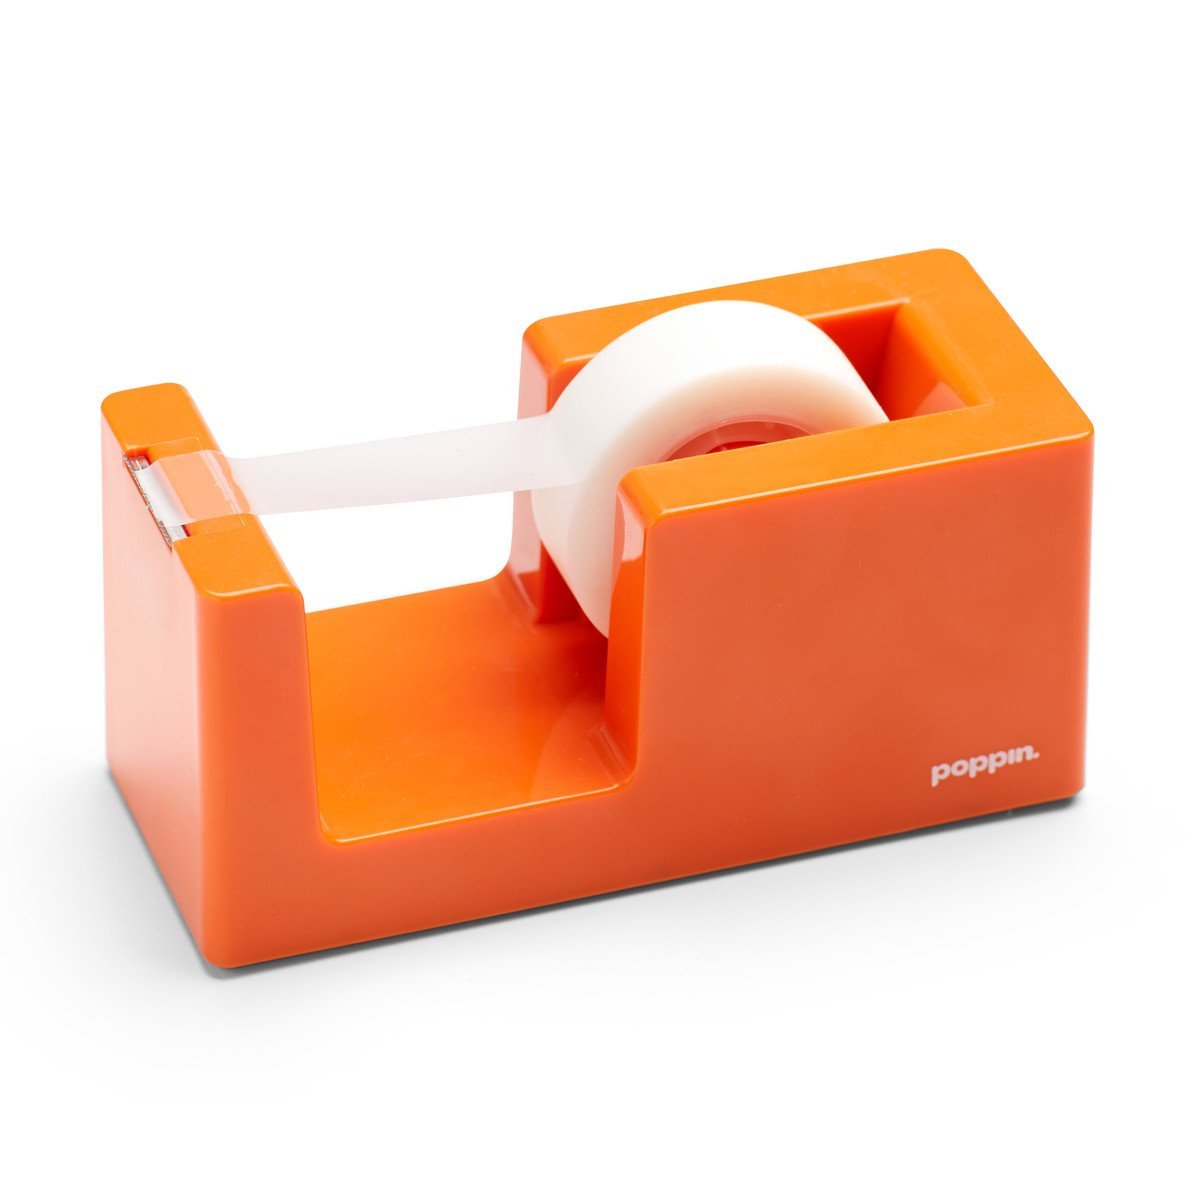 Poppin Tape Dispenser - Orange